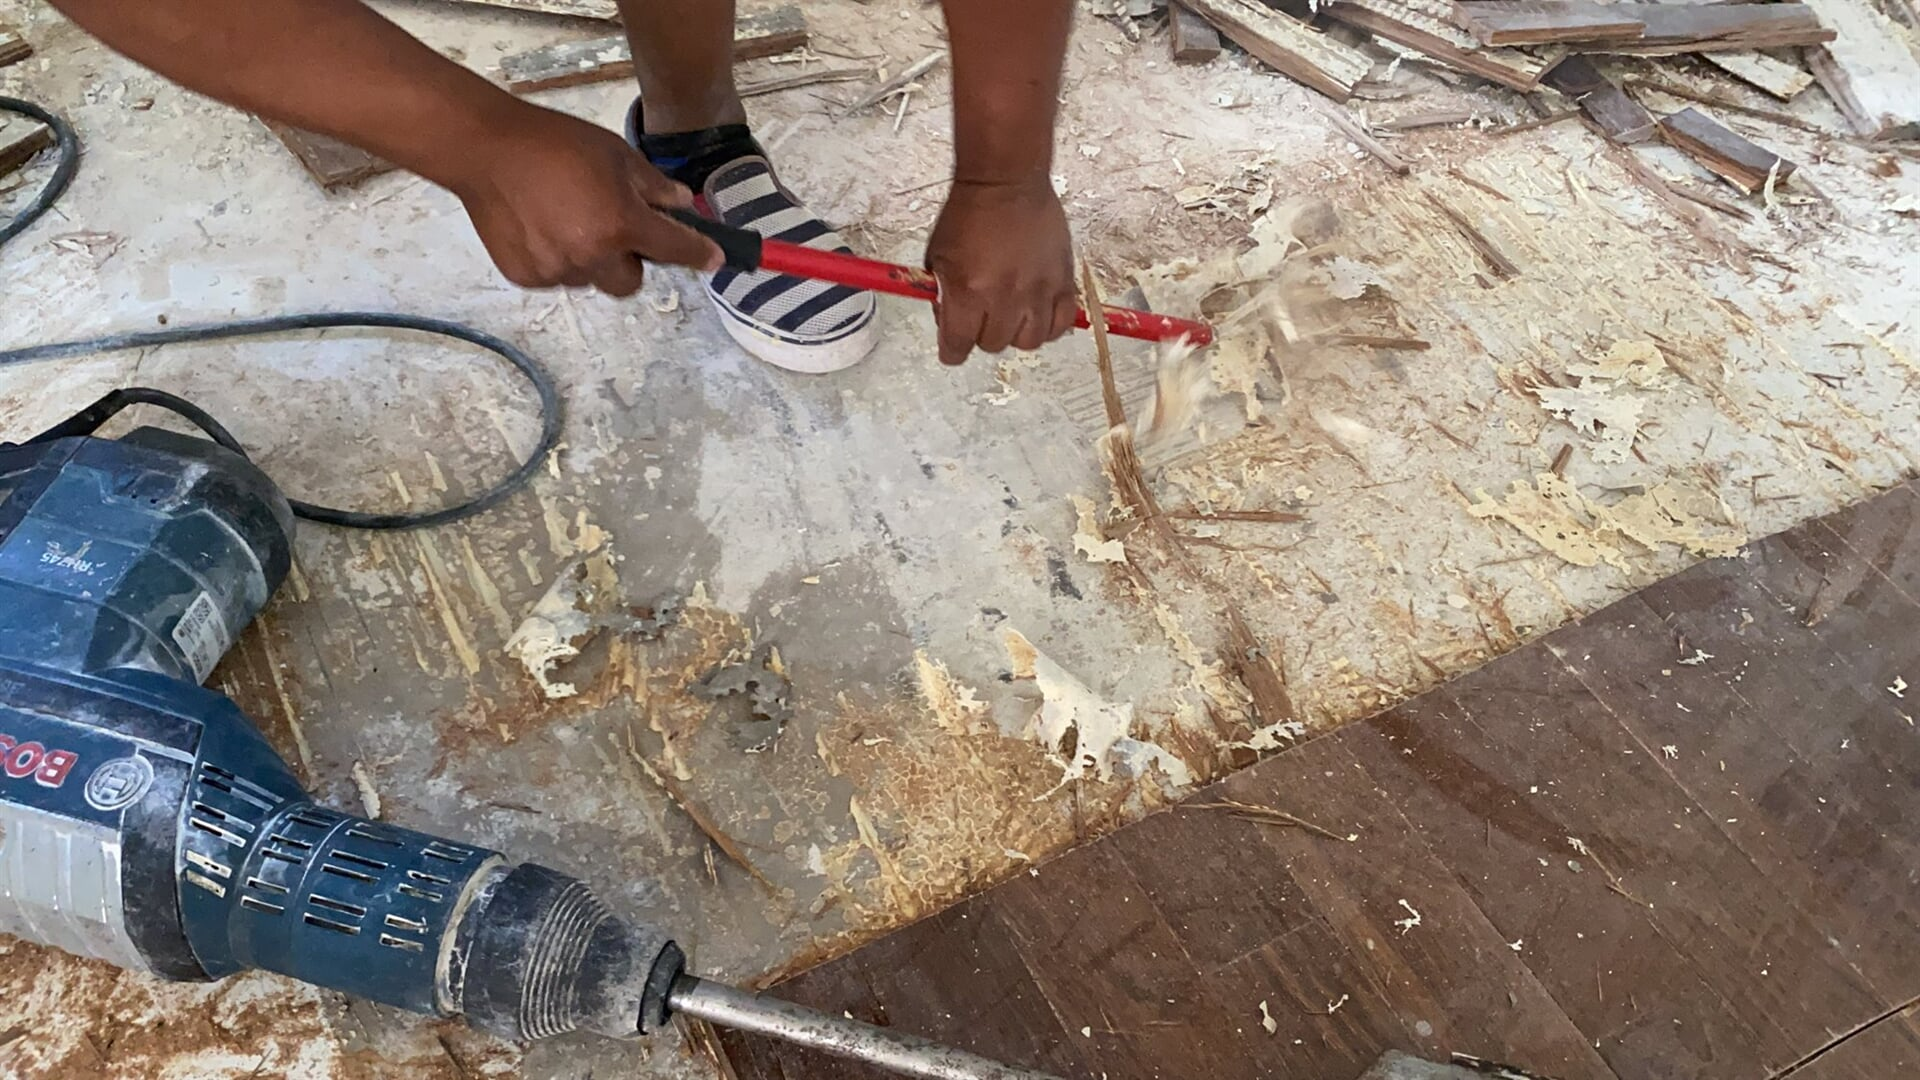 Subfloor cleaning in Juno Beach, FL from Floors For You Kitchen & Bath